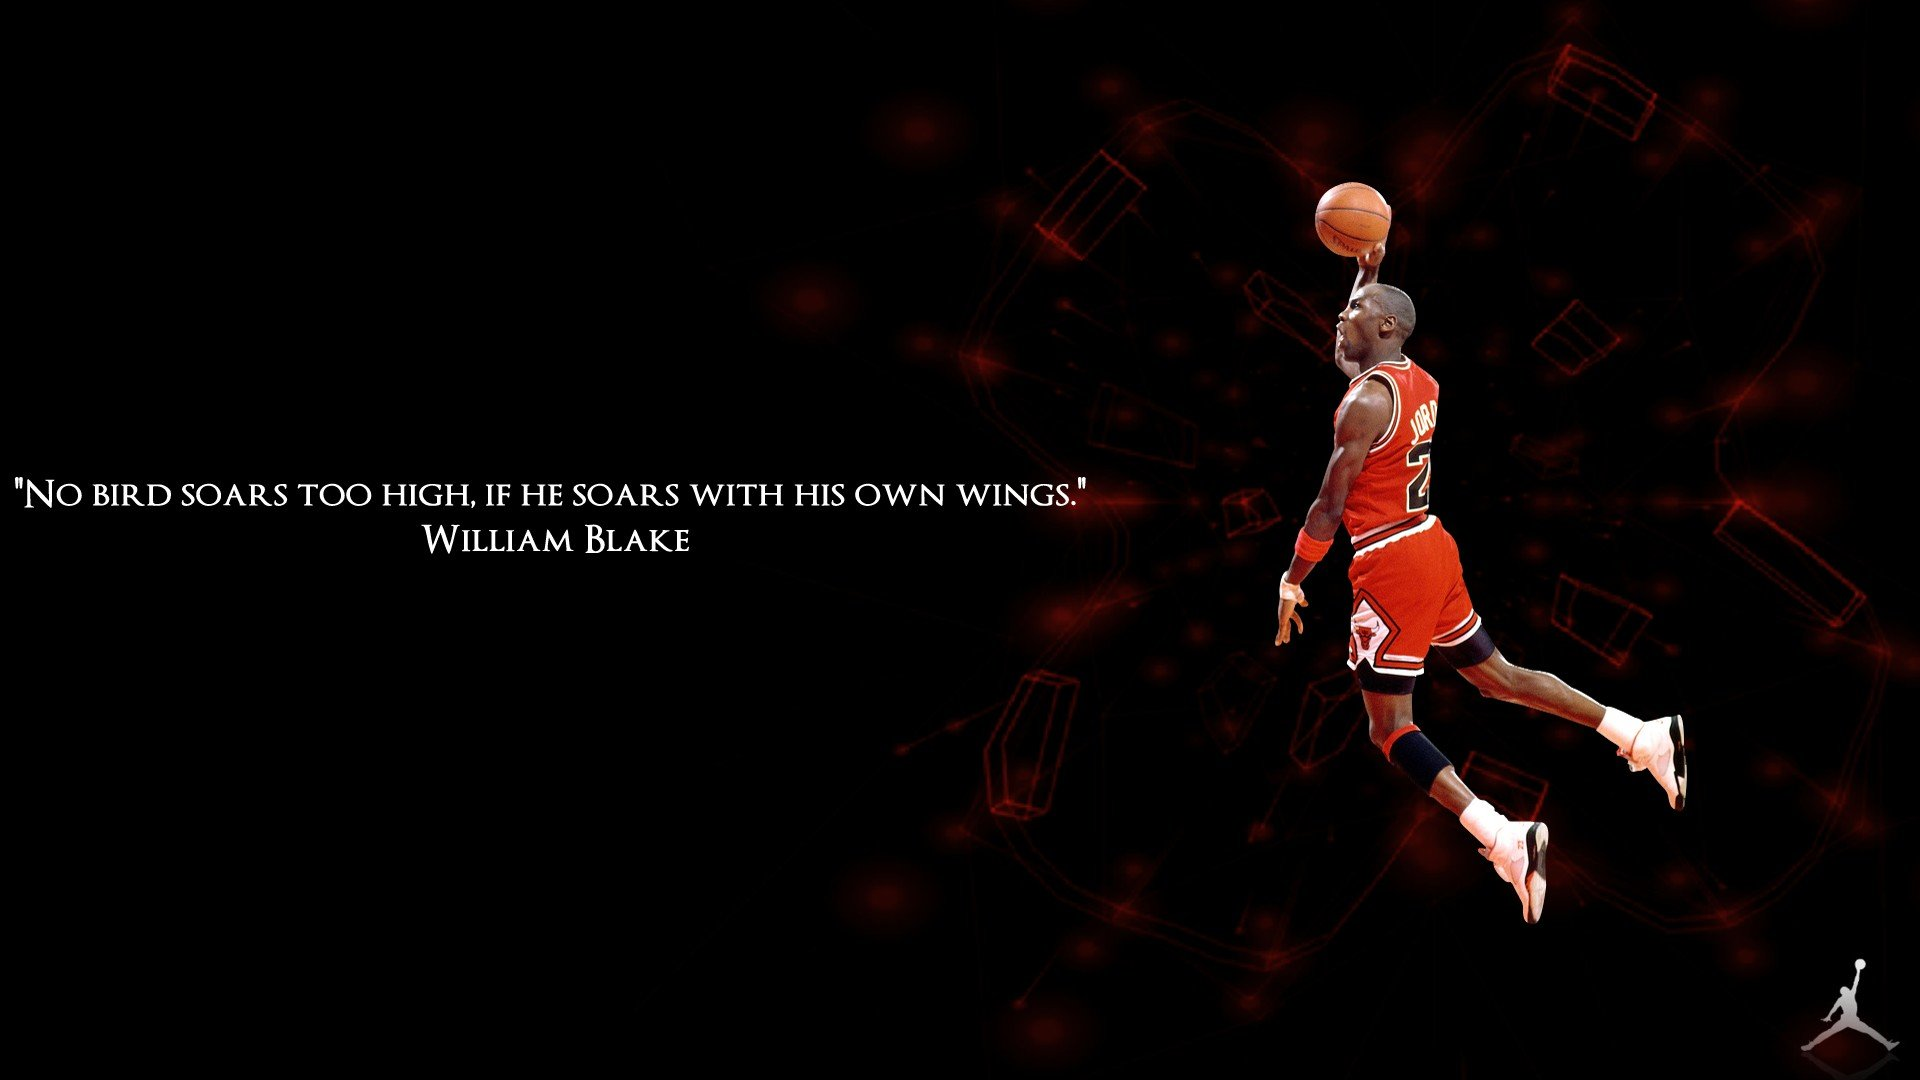 Michael Jordan Dunk 2013 HD Wallpaper Wallpaper HD Background 1920x1080